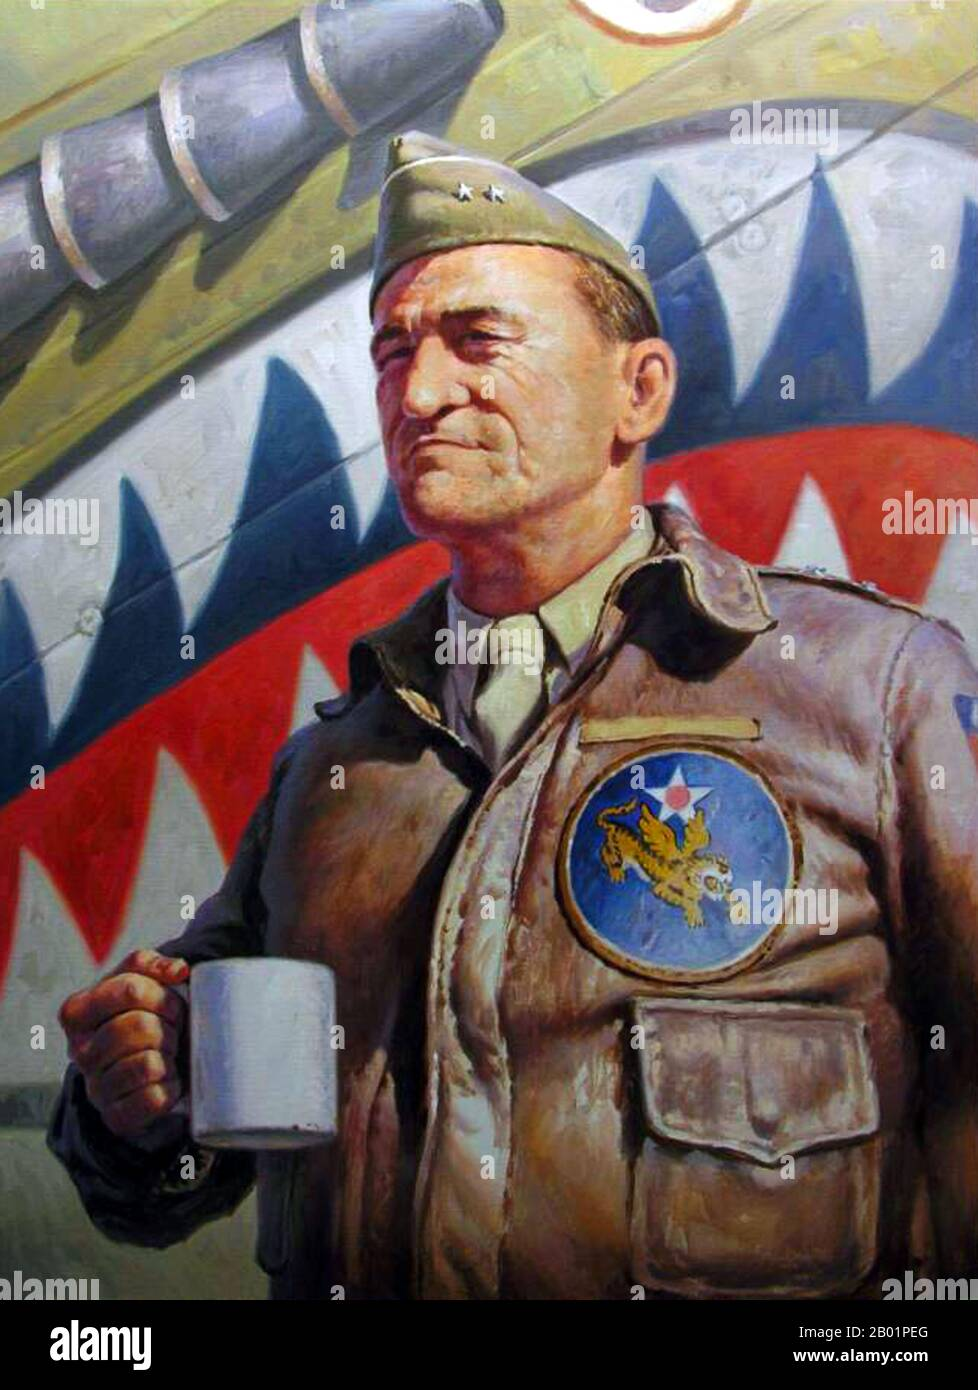 Lieutenant General Claire Lee Chennault (September 6, 1893 – July 27, 1958), was an American military aviator. A contentious officer, he was a fierce advocate of fight-interceptor aircraft during the 1930s when the U.S. Army Air Corps was focused primarily on high-altitude bombardment. Chennault retired in 1937, went to work as an aviation trainer and adviser in China, and commanded the 'Flying Tigers' during World War II, both the volunteer group and the uniformed units that replaced it in 1942. Stock Photo